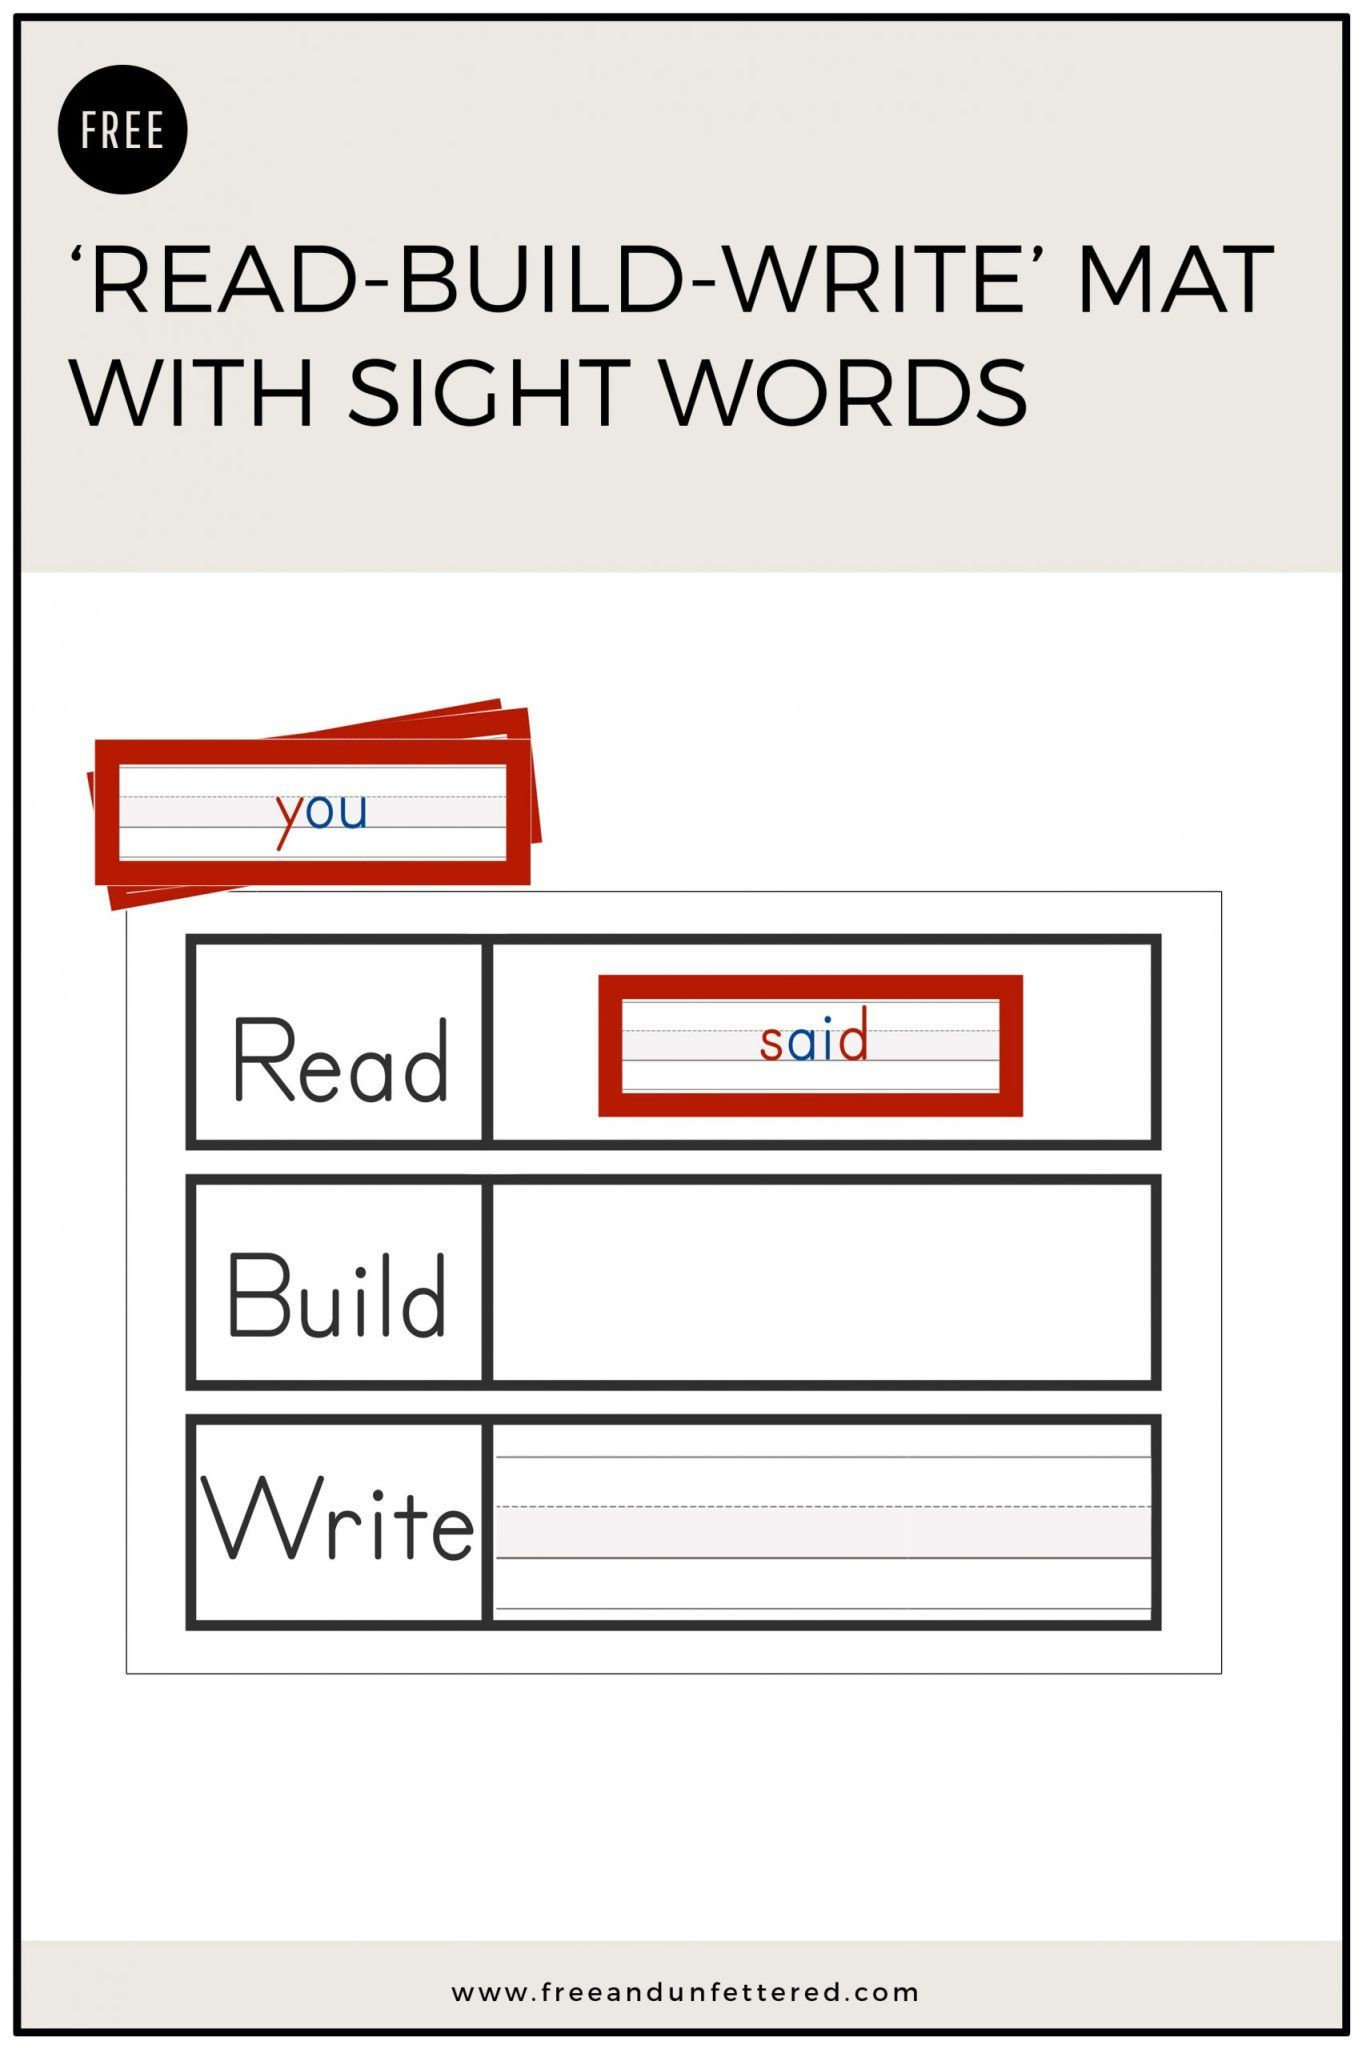 Free Printable Read Build Write Mat With Sight Words